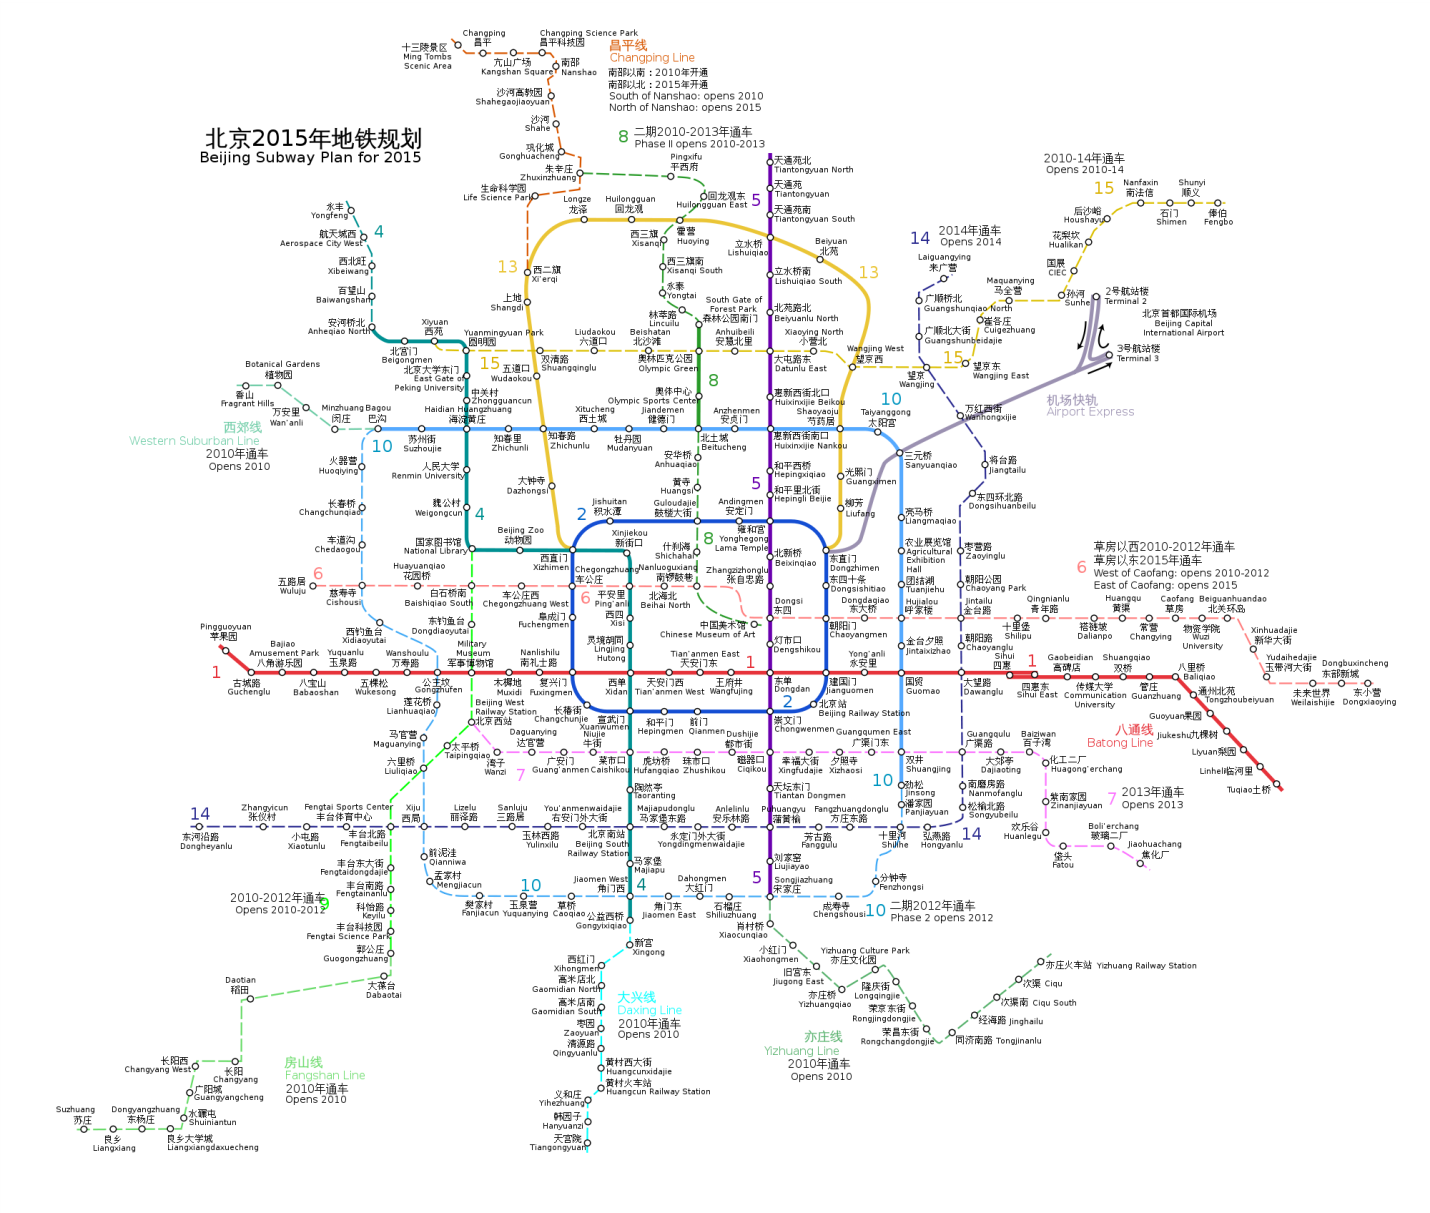 Beijing Subway Plan for 2020